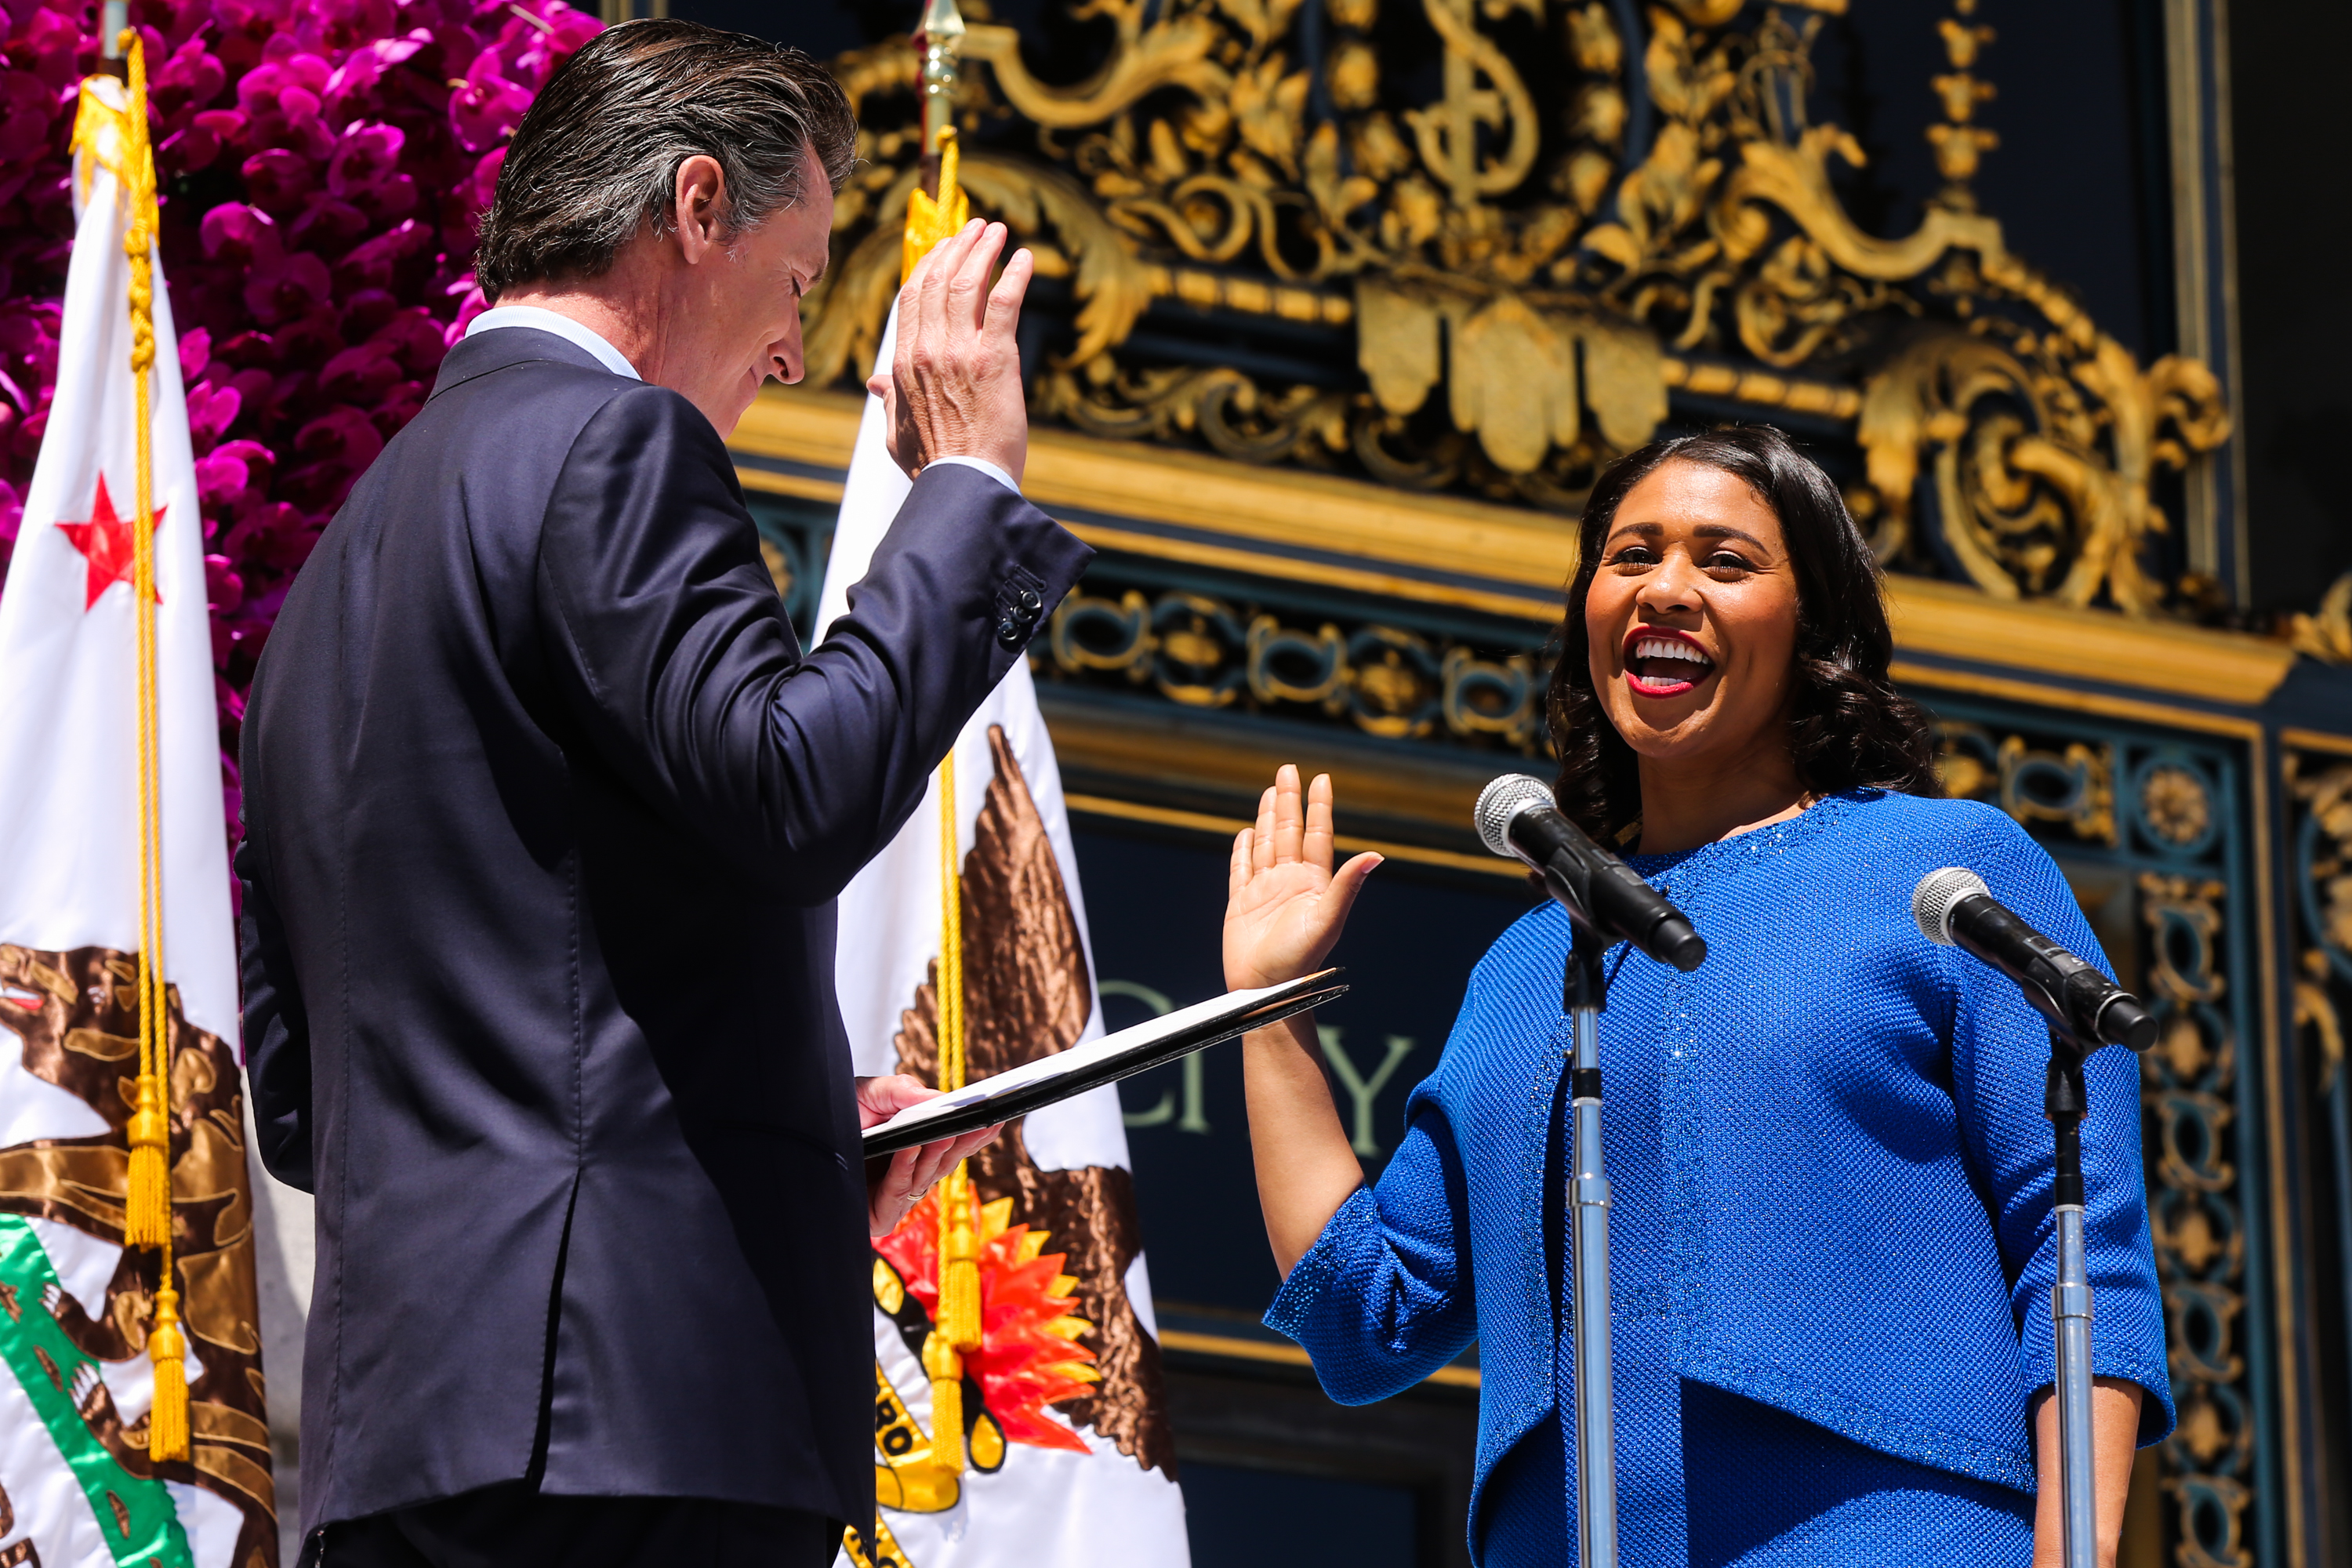 <div class='meta'><div class='origin-logo' data-origin='none'></div><span class='caption-text' data-credit='The Chronicle'>Mayor London Breed takes the oath of office during the inauguration outside City Hall in San Francisco on Wednesday, July 11, 2018.</span></div>